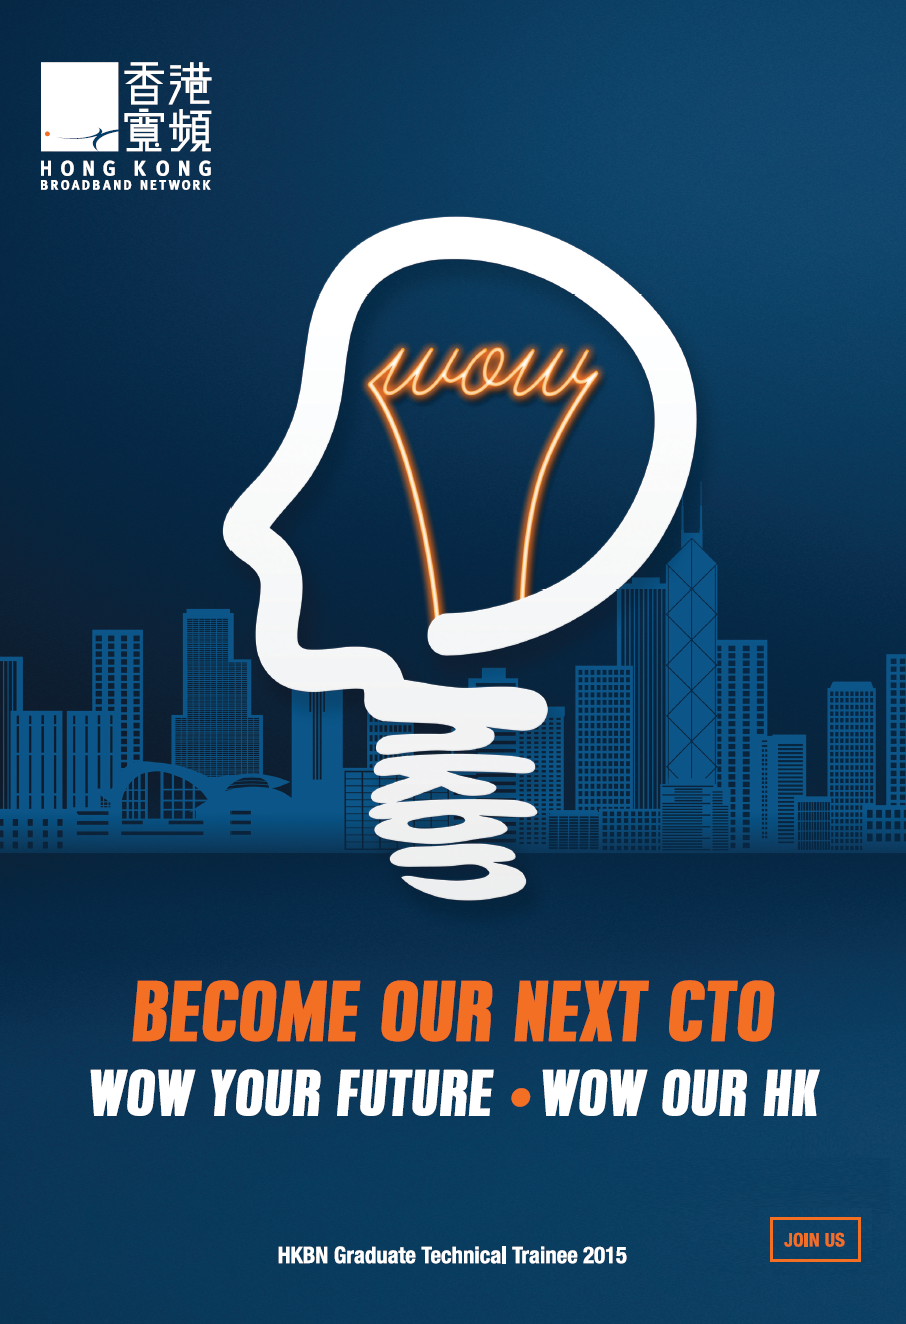 HKBN Graduate Technical Trainee 2015 - Become our next CTO